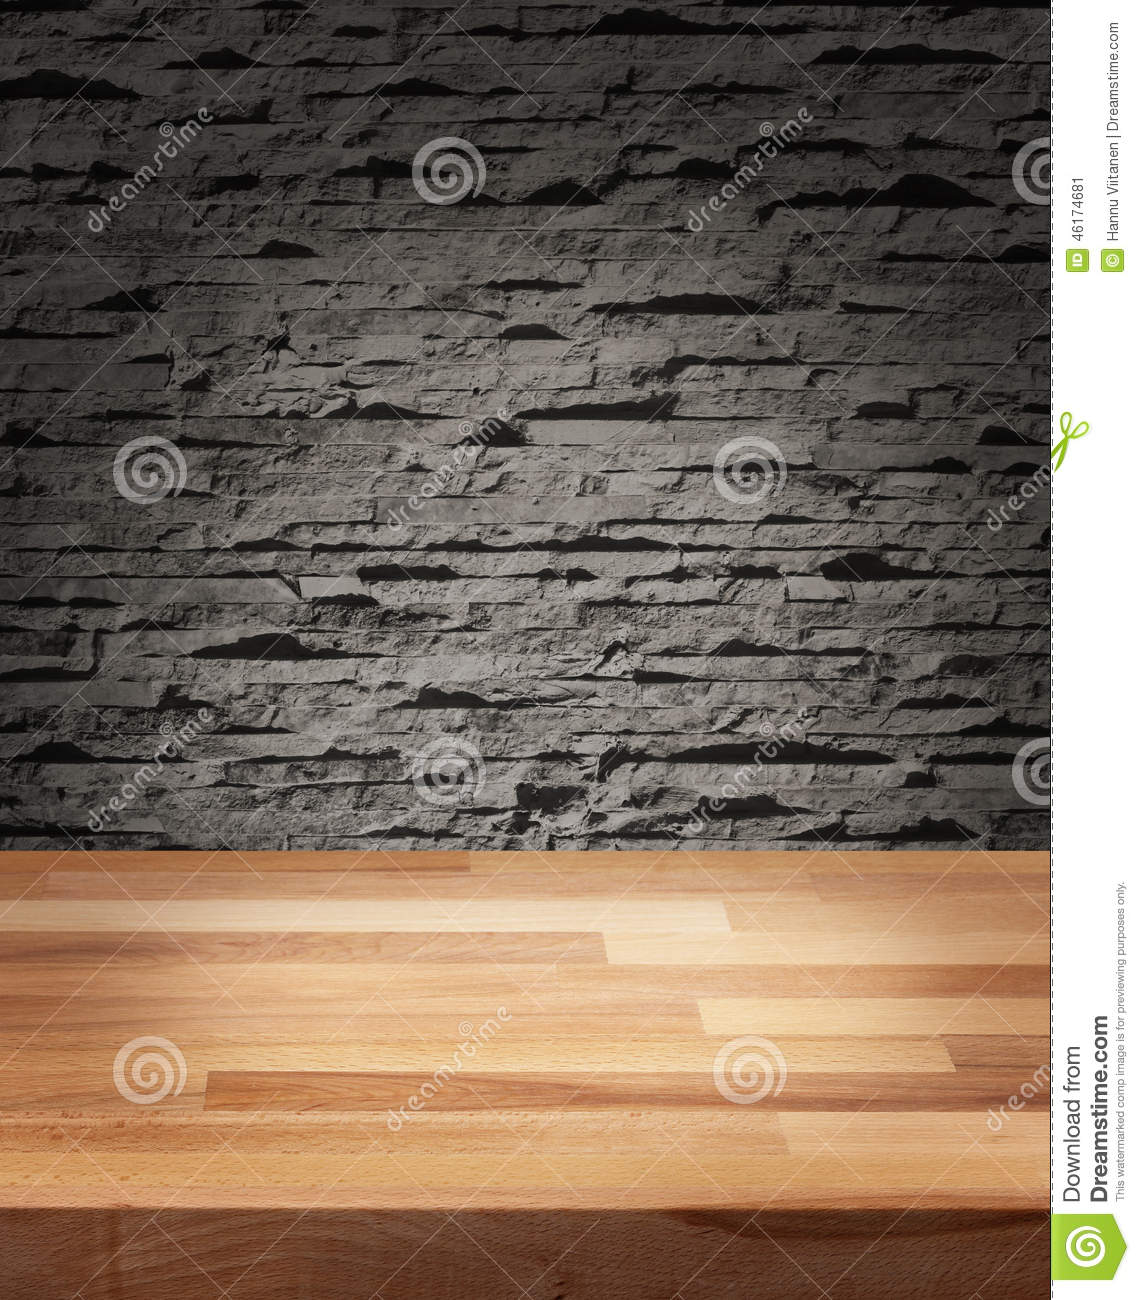 product photo template wooden table stock photo image 46174681. Black Bedroom Furniture Sets. Home Design Ideas